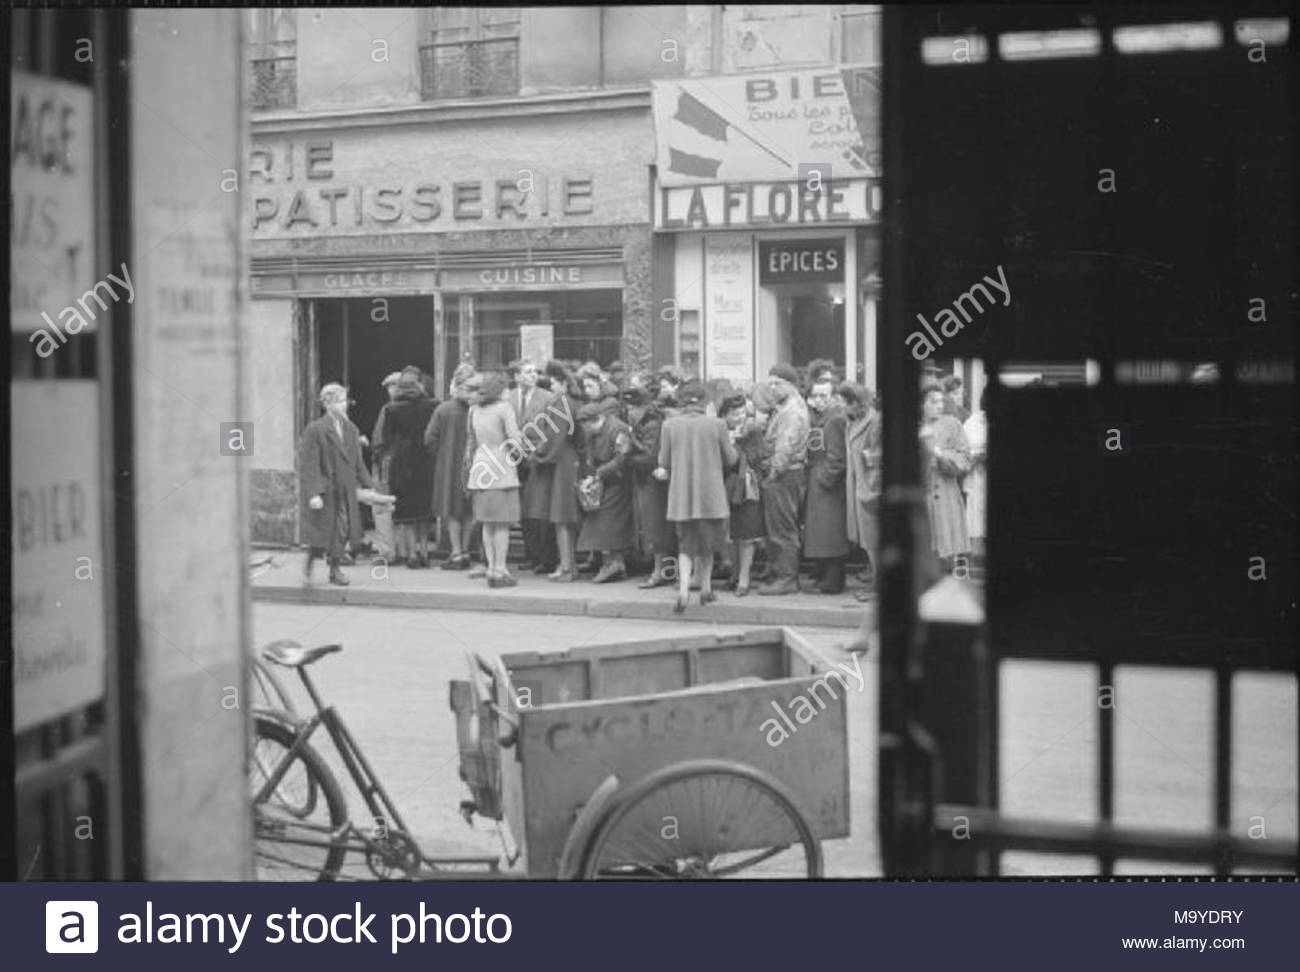 France 1945 A large group of